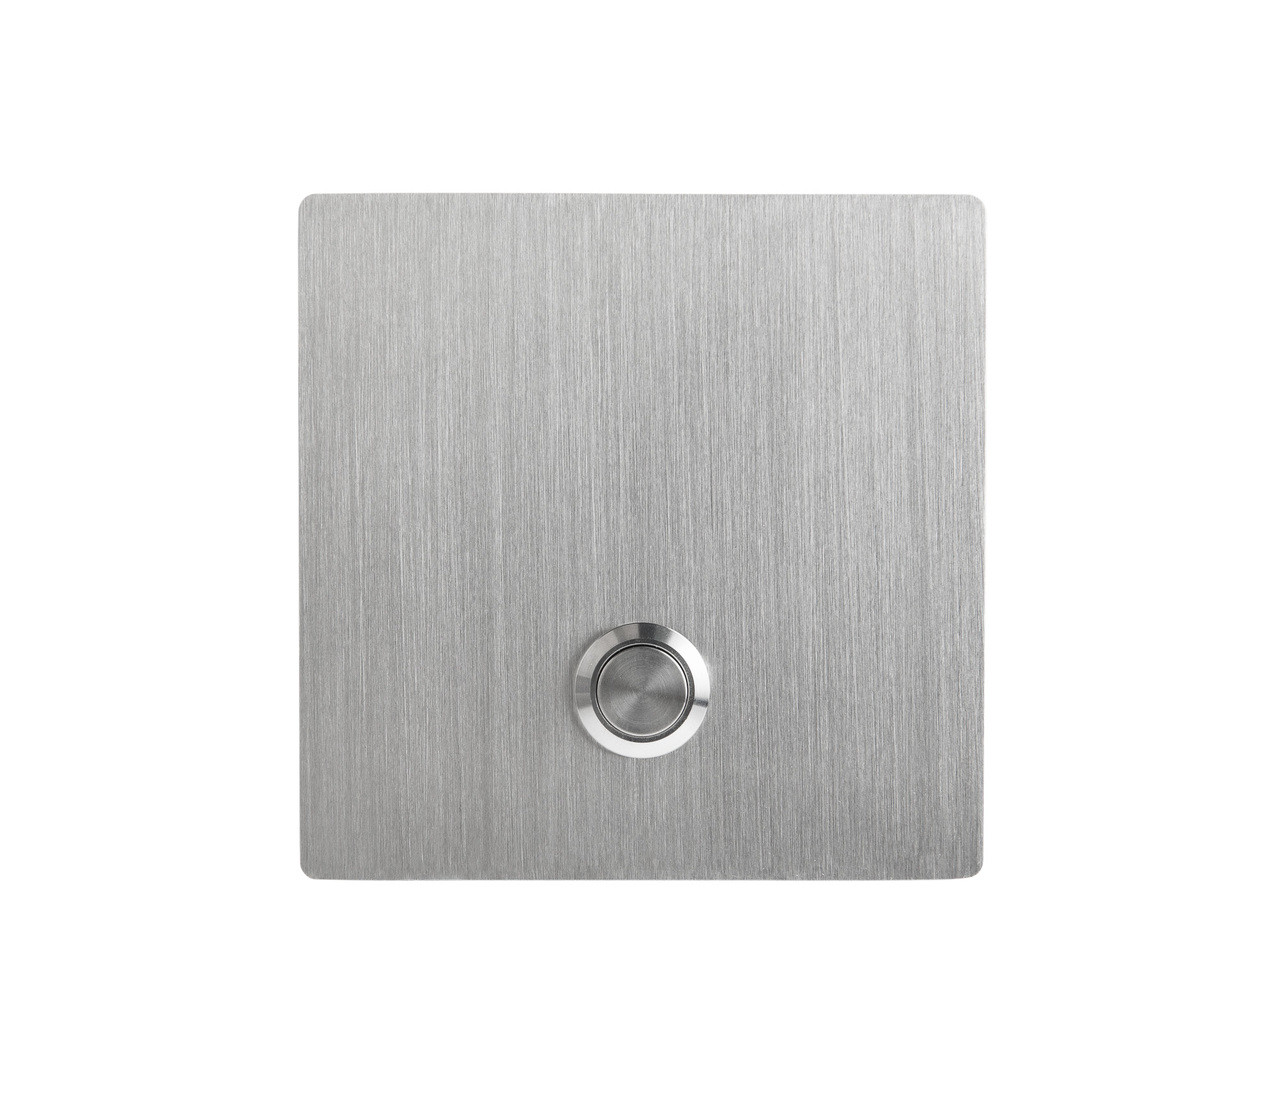 Picture of: Stainless Steel Modern Doorbell Button